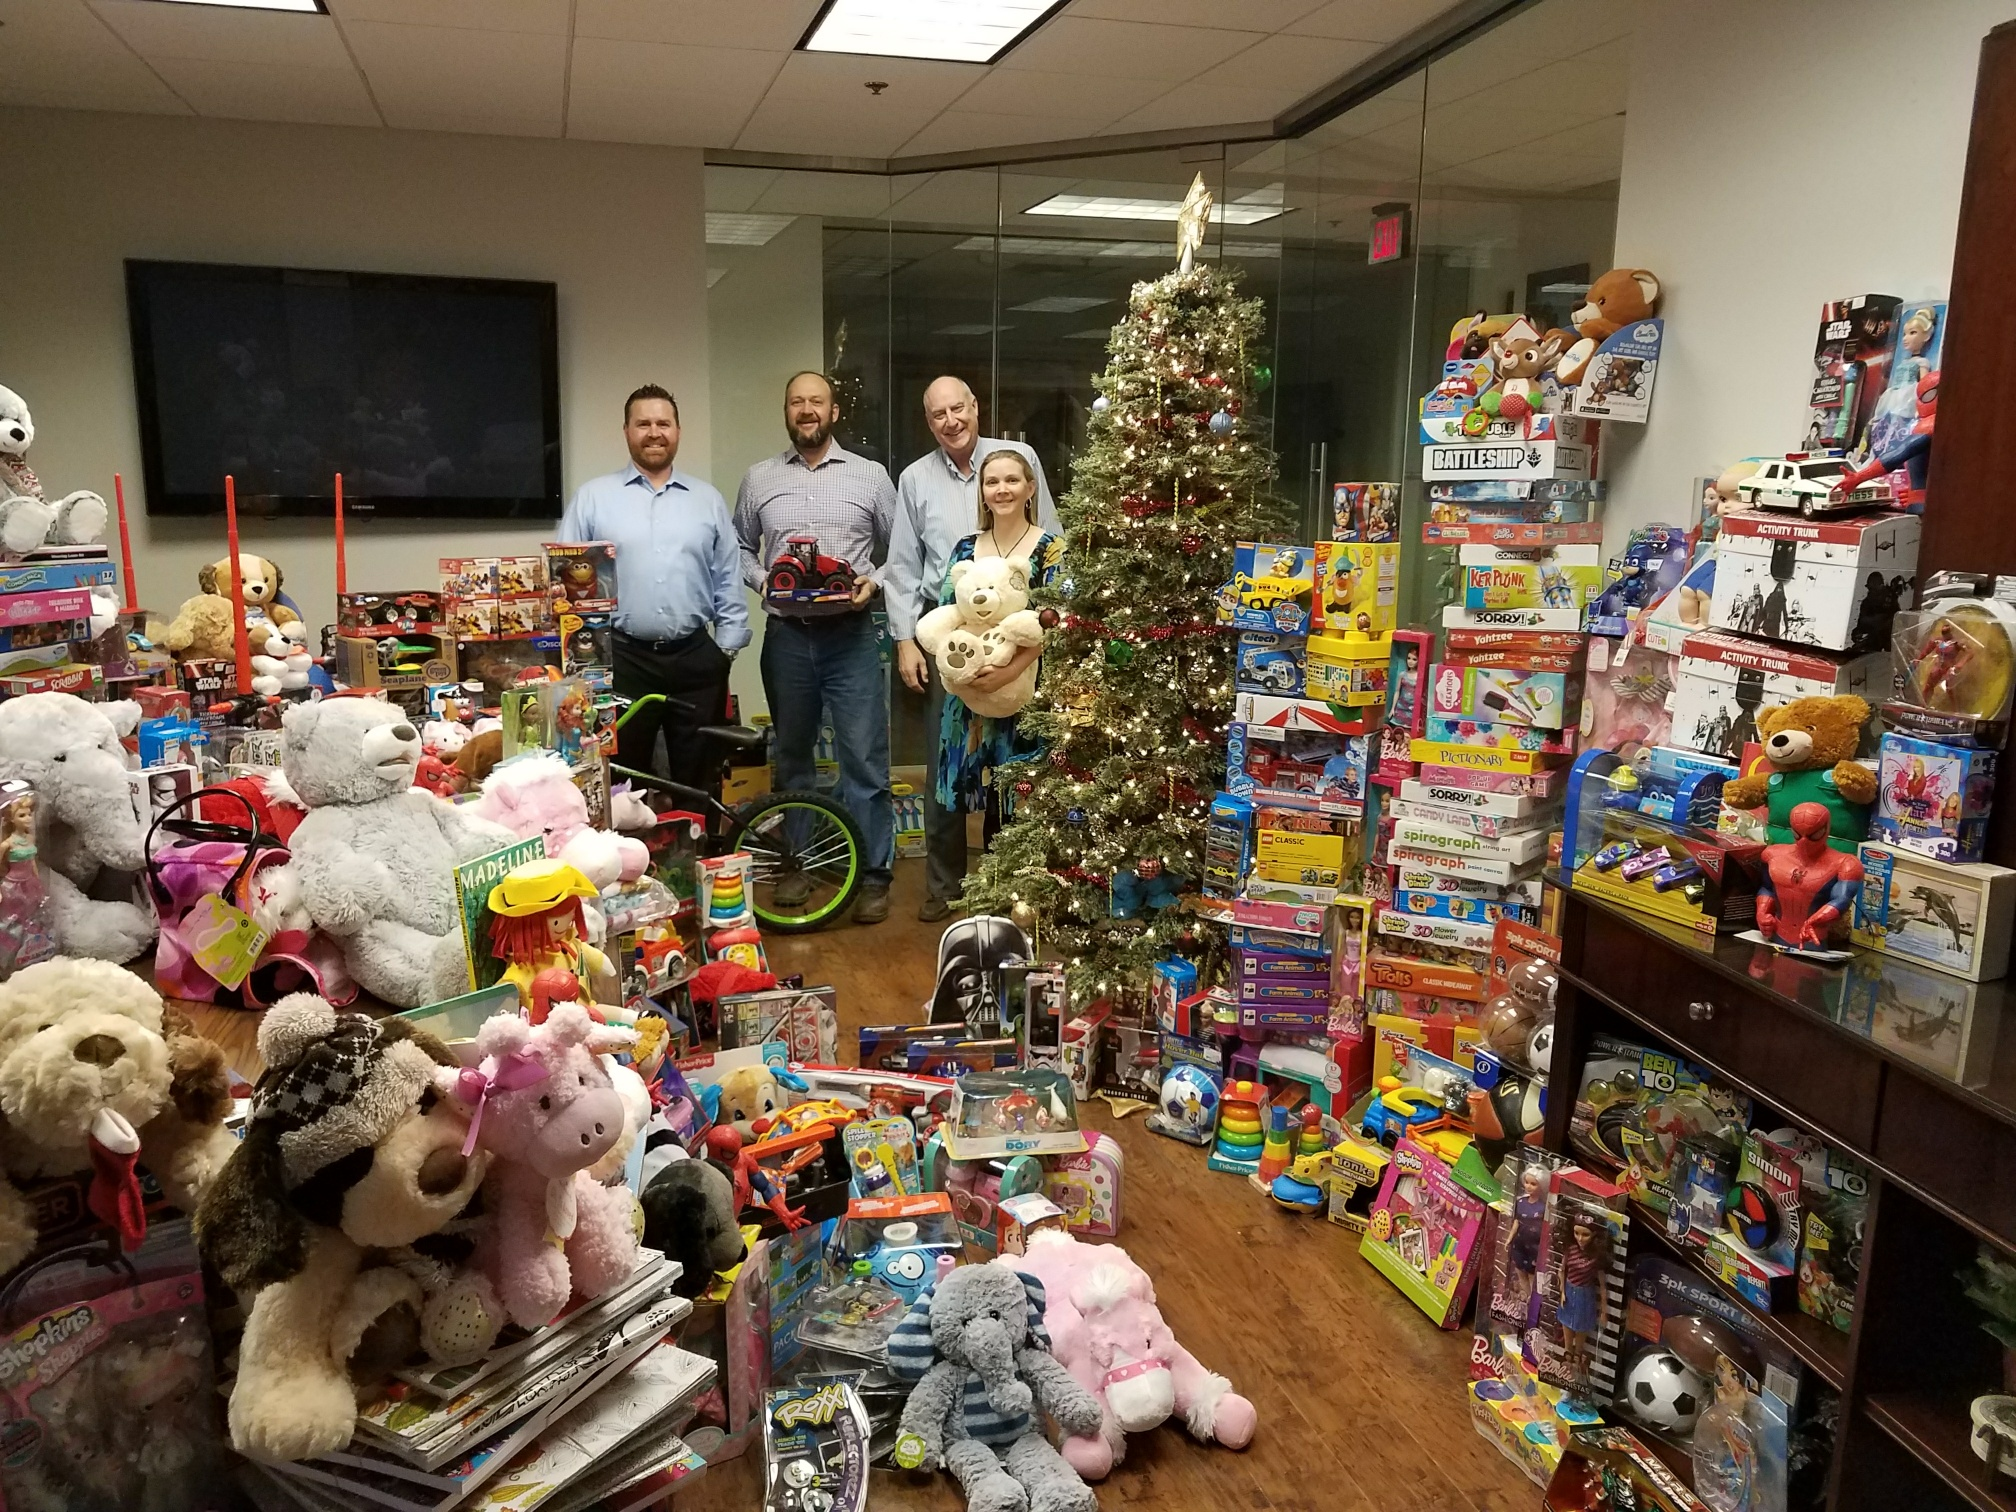 2 Toys For Tots : Donations make toys for tots possible arizona news